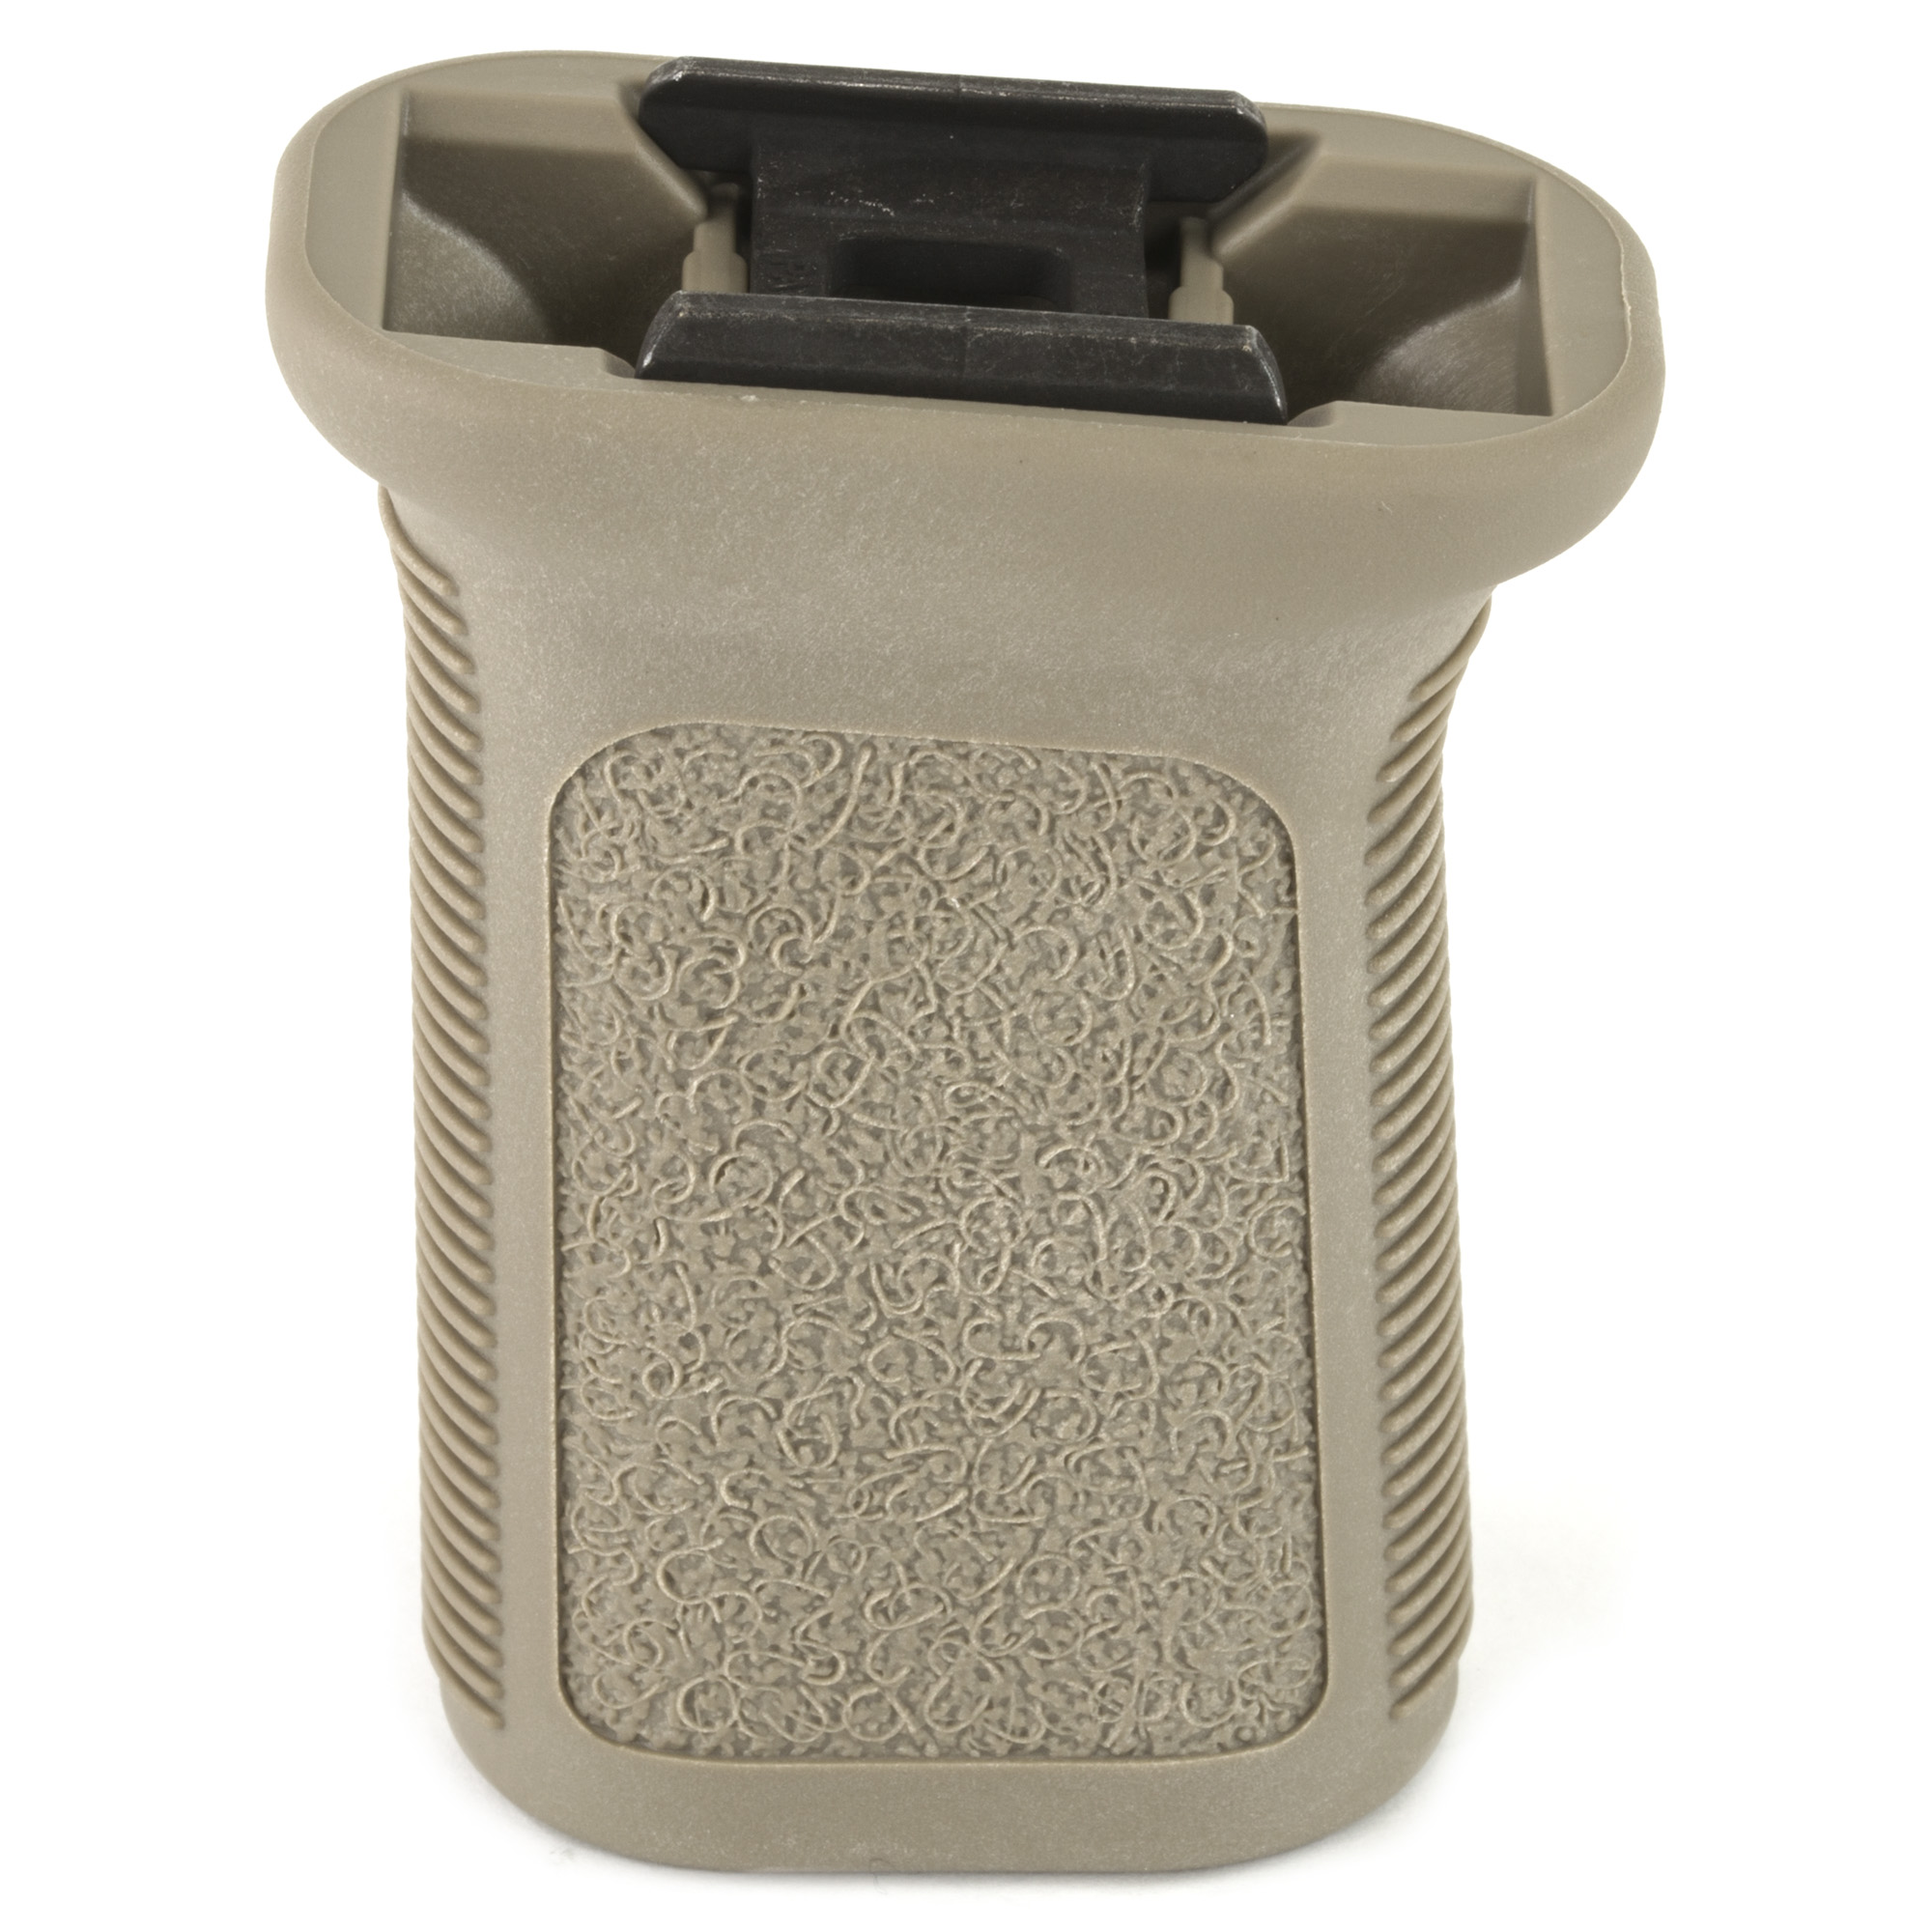 """Bravo Company's BCMGUNFIGHTER Vertical Grip Mod 3-Picatinny is the new Patent Pending BCM(R) Direct Mount Picatinny 1913 interface system. It was developed to be the most rigid"""" light-weight"""" and cost effective system available for Vertical Pistol Grips and Hand Stop type accessories. Most of the industry relies on a simple screw and backing nut for a mounting system. BCM(R) has developed a patent pending anchor system that not only secures to the mounting surface"""" but spreads the energy and force throughout the accessory. Conventional mounting systems can allow for an increased amount of shifting and flexing of the accessory. The BCM(R) direct mount interface system reduces those issues and offers a more secure lockup"""" eliminating play in the mounting surface. It has a low-profile length for increased mobility and a decreased snag factor. The forward angle increases the rigidity of the forearm"""" while providing a more natural wrist angle. It can be mounted in reverse angle to increase control when grabbing handguard and grip and the flat sides with aggressive texture give better yaw control to the shooter during firing and non-firing manipulations."""